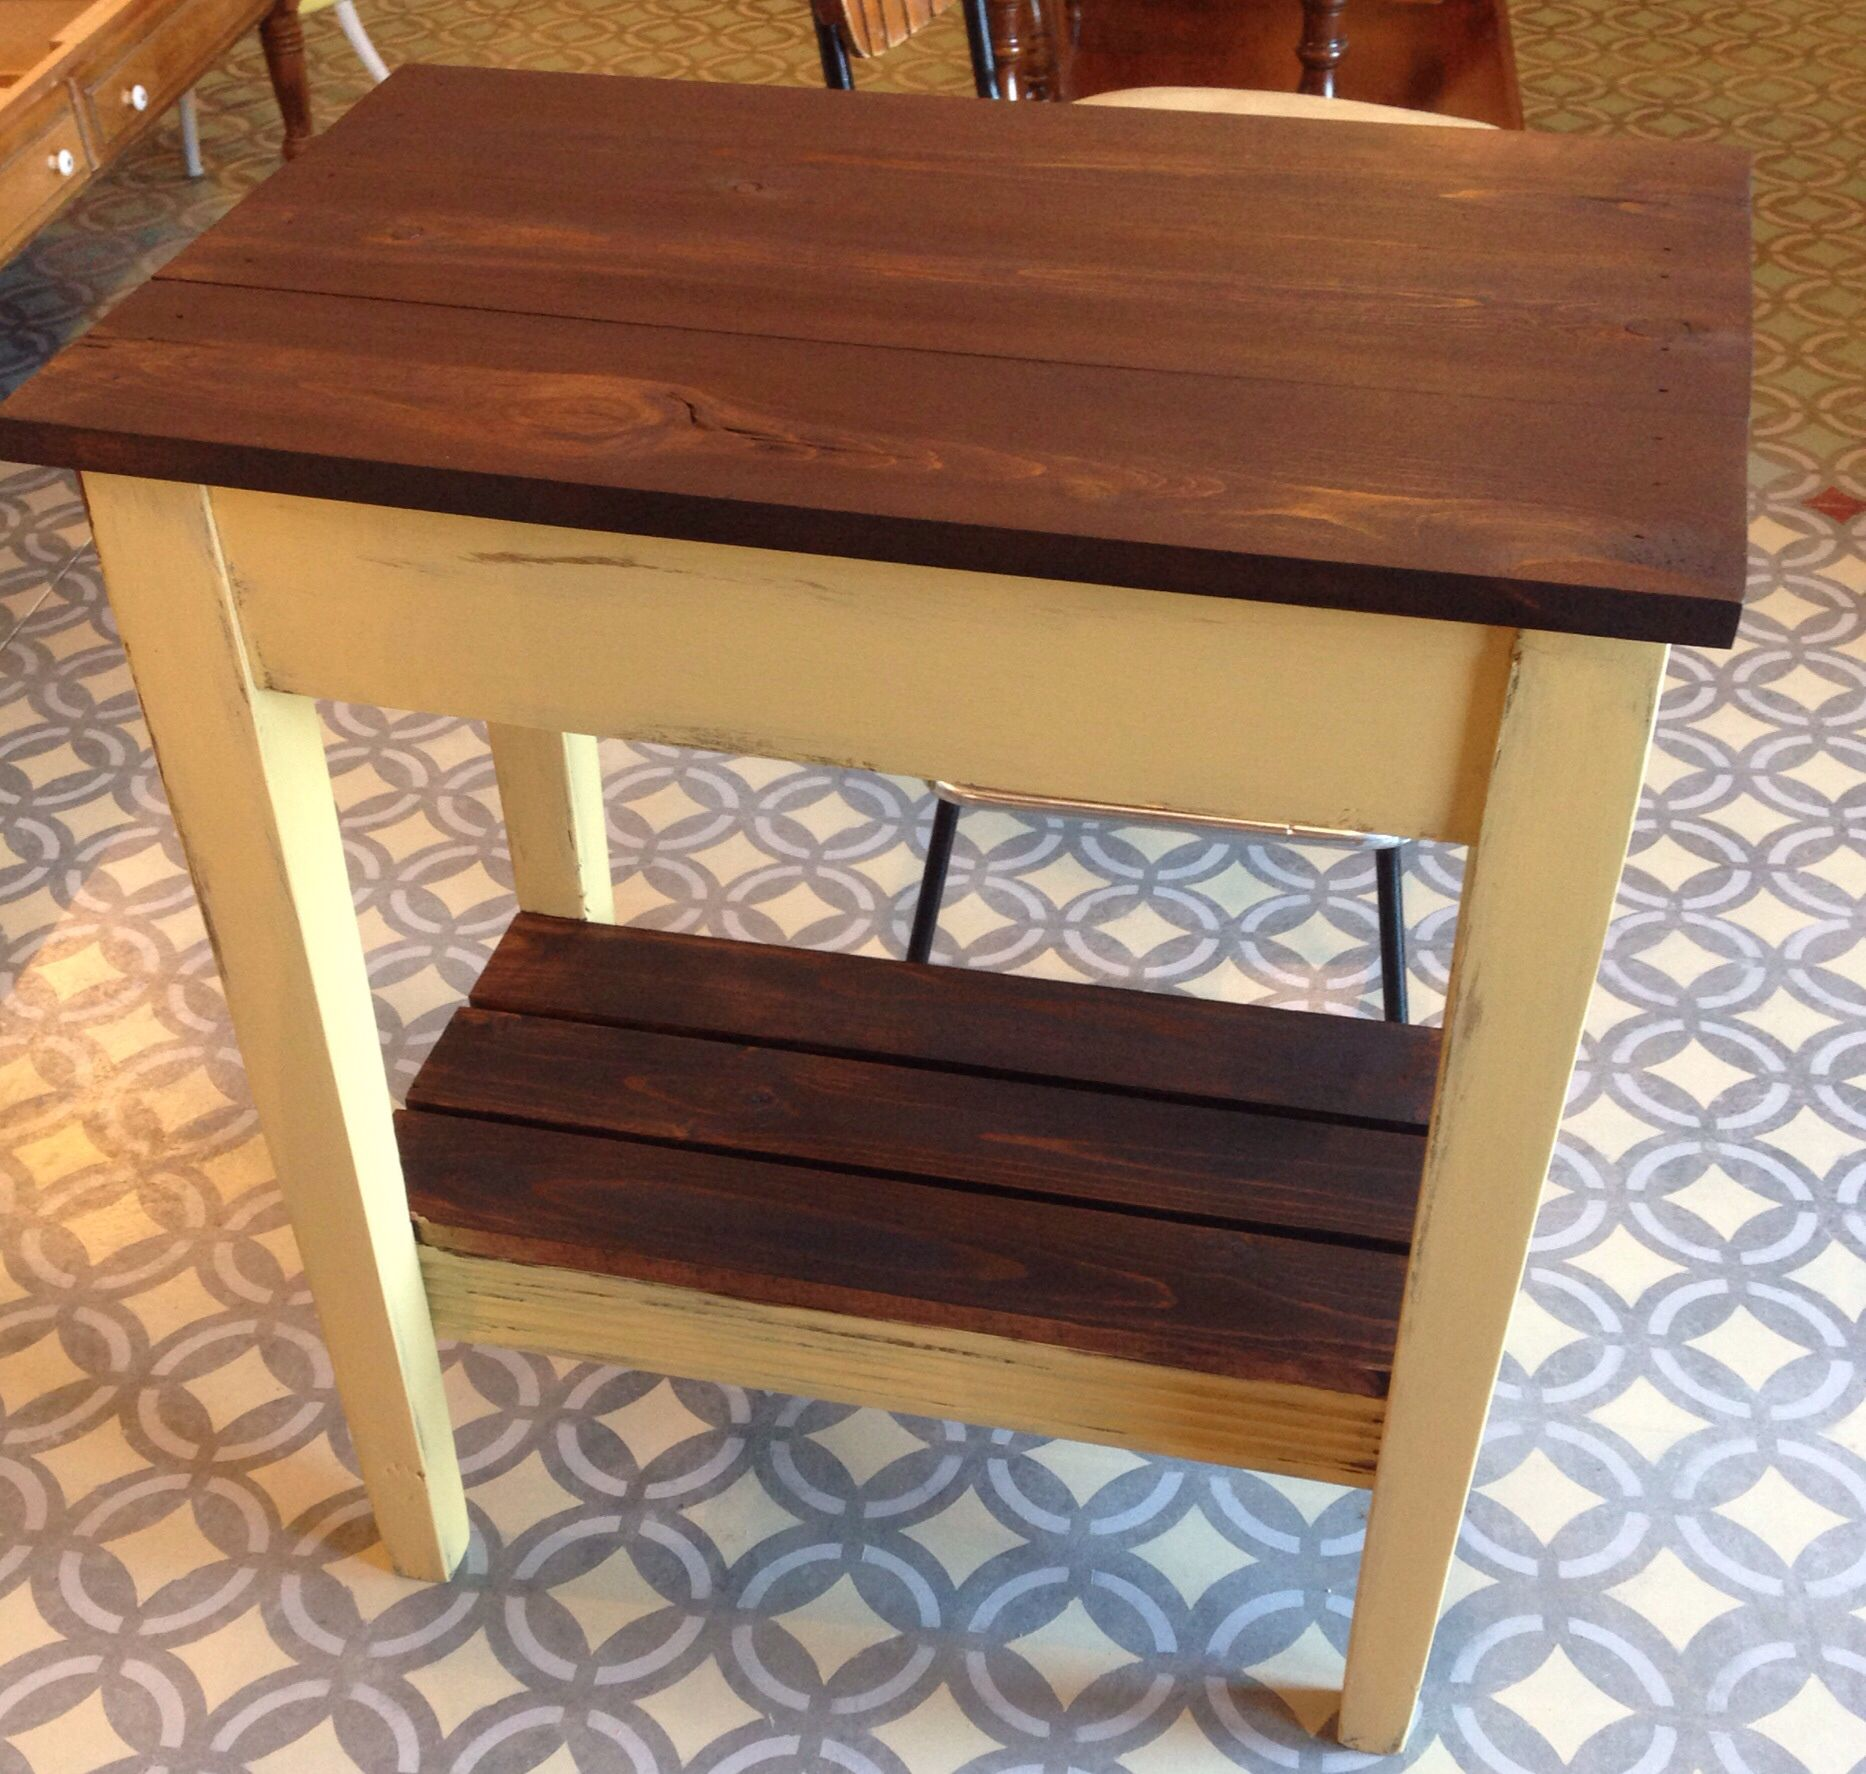 Coffee Table Ottoman General Finishes Milk Paint, Somerset Gold &